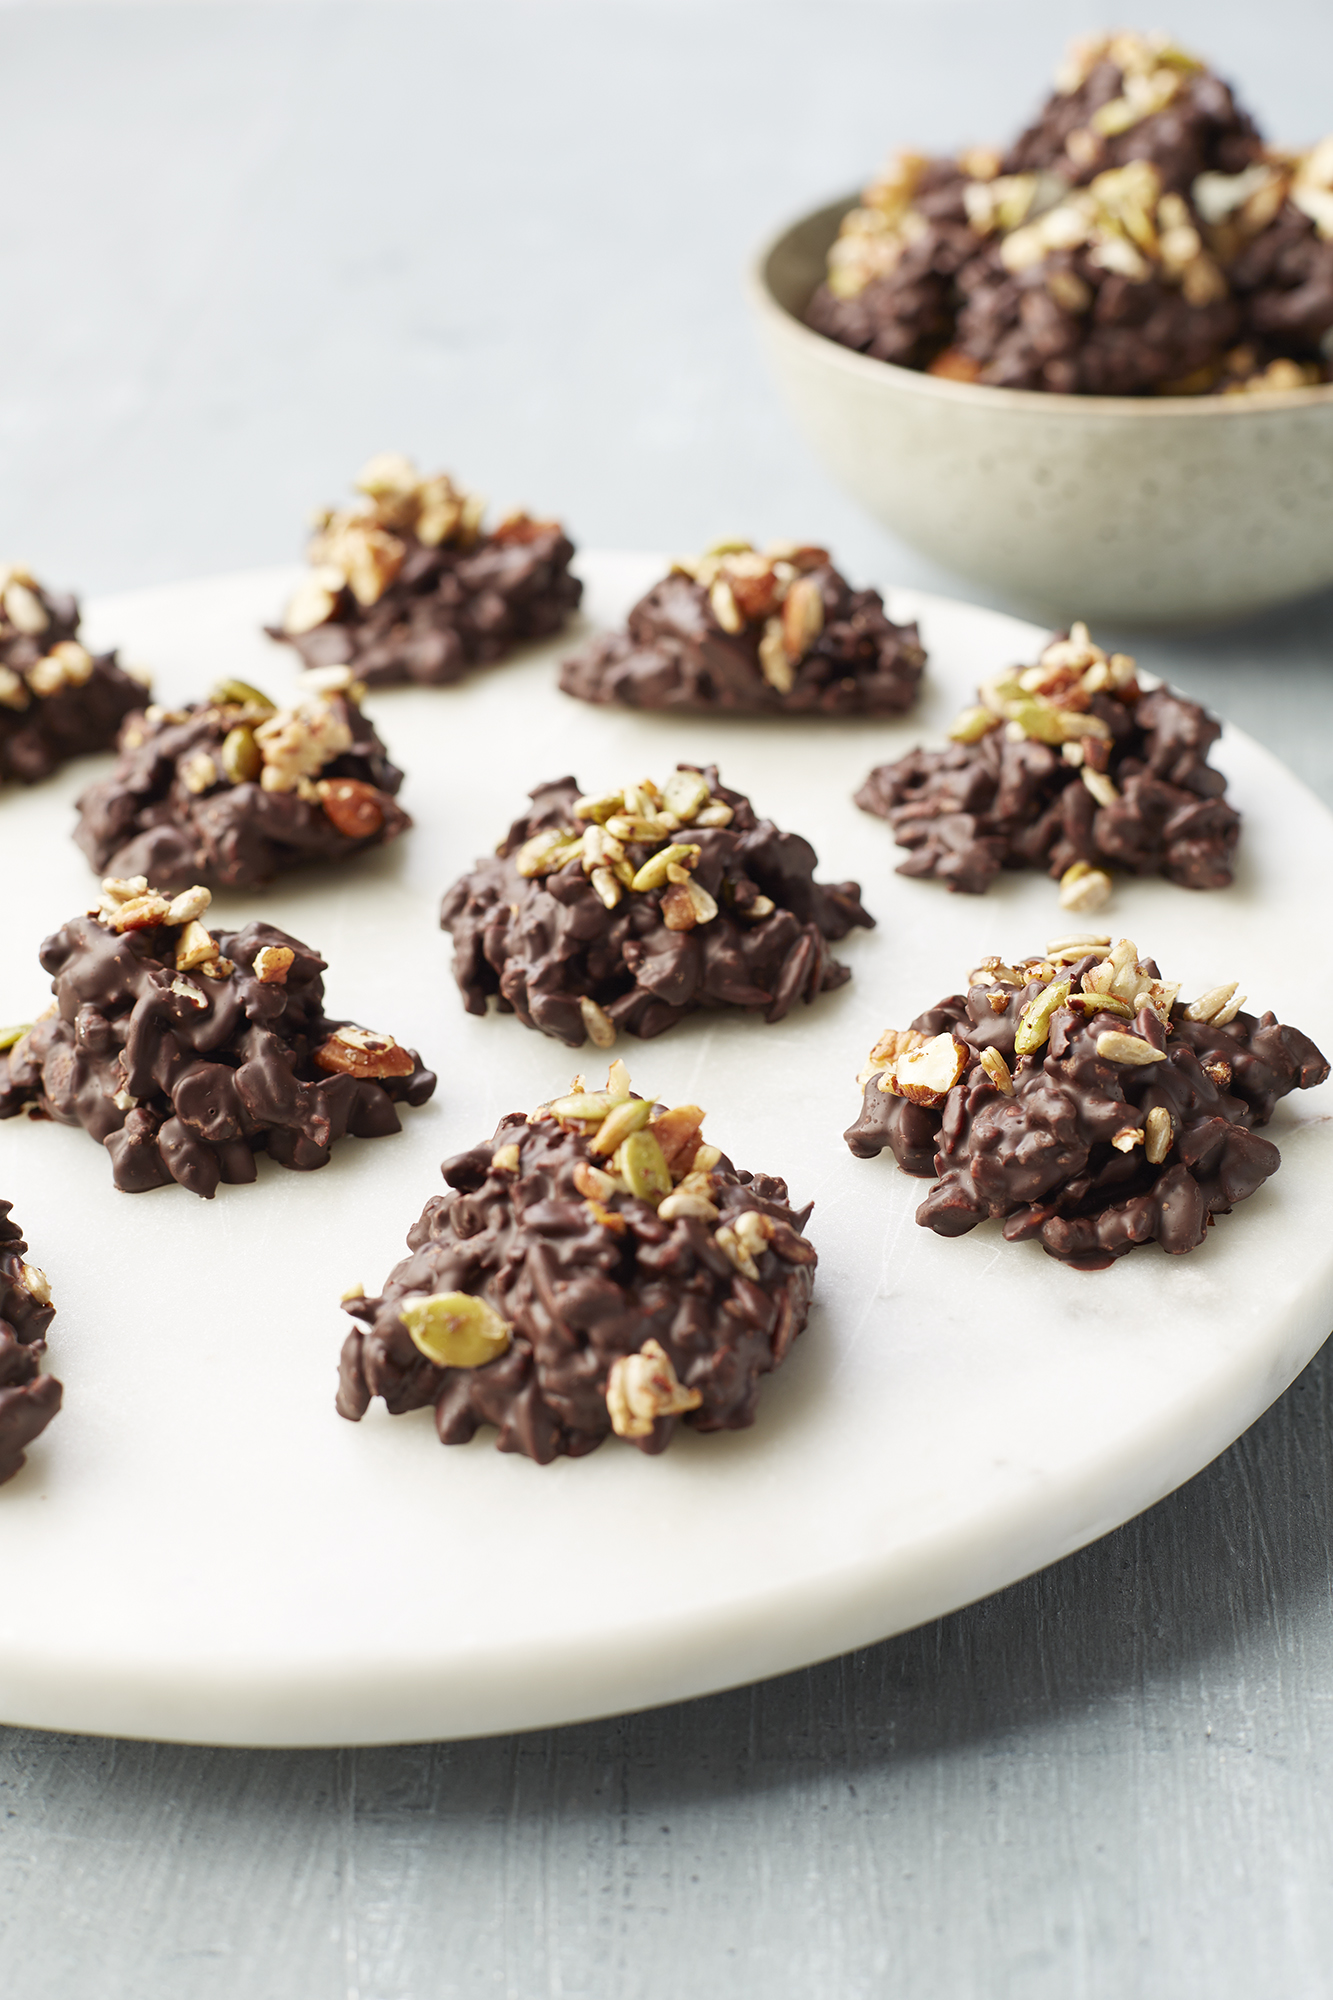 Chocolate Nut & Seed Clusters